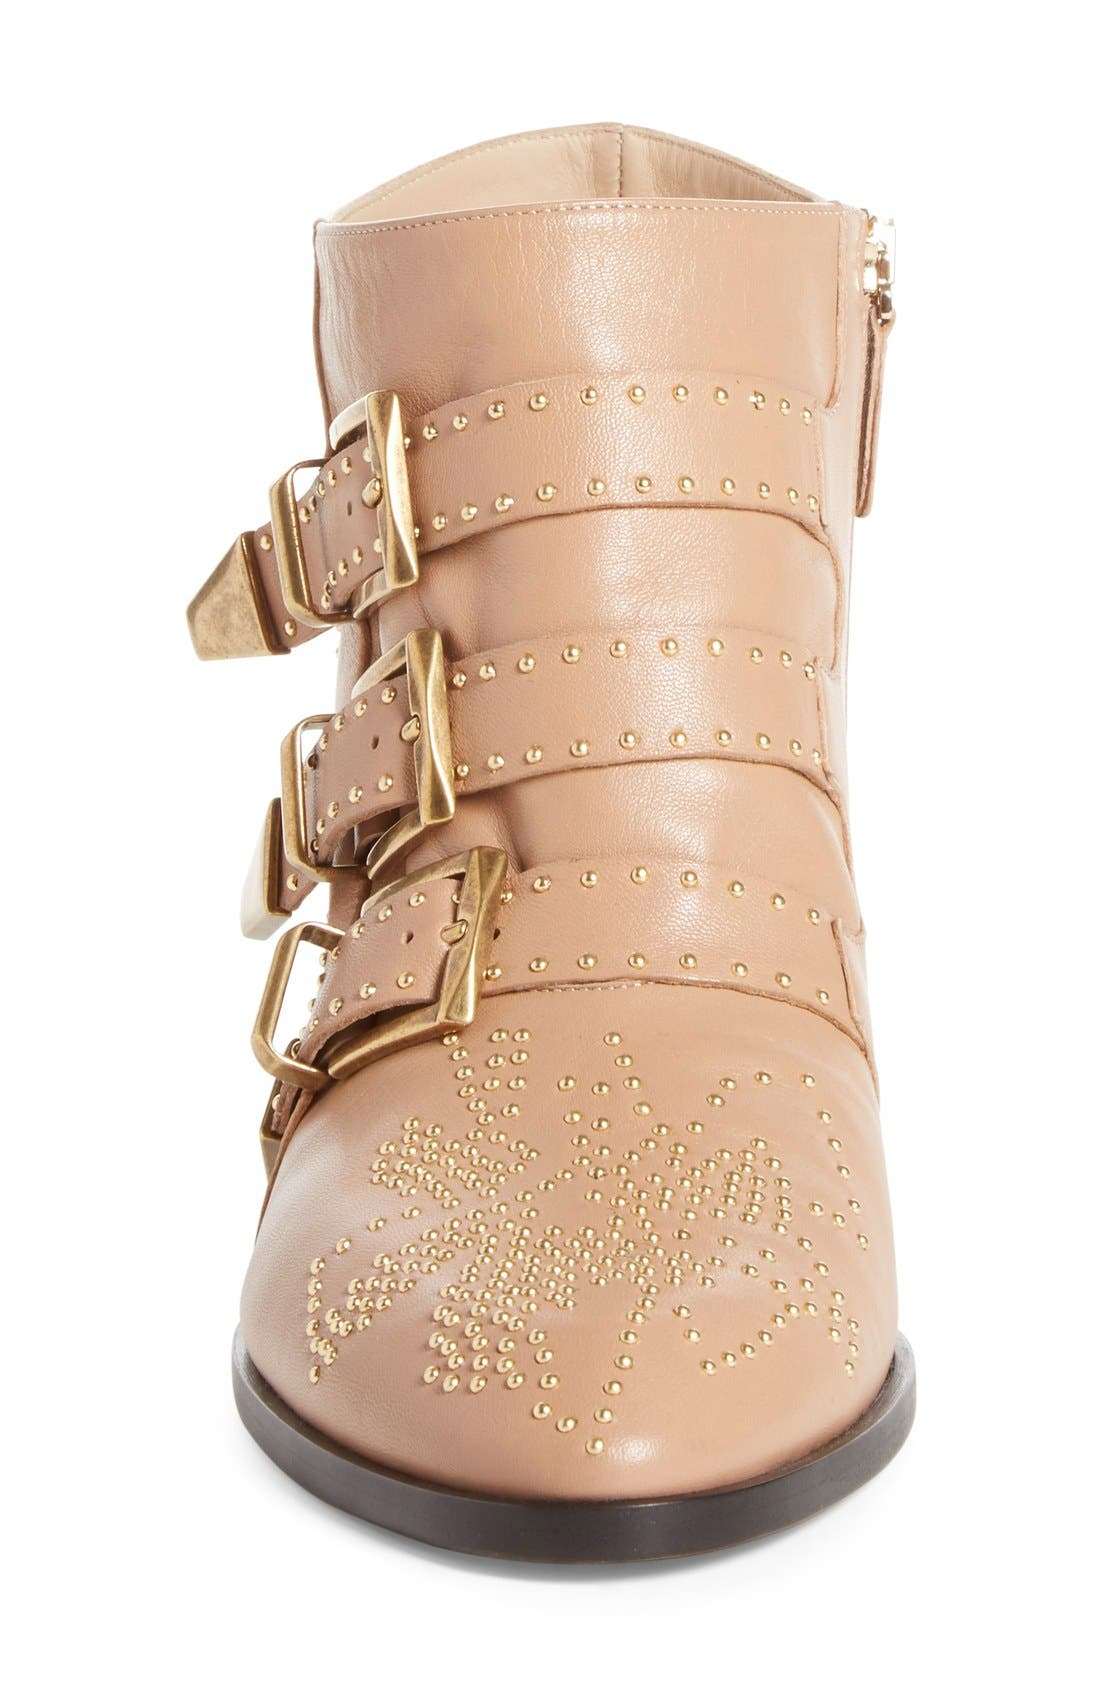 Susanna Stud Buckle Bootie,                             Alternate thumbnail 3, color,                             Beige Gold Leather